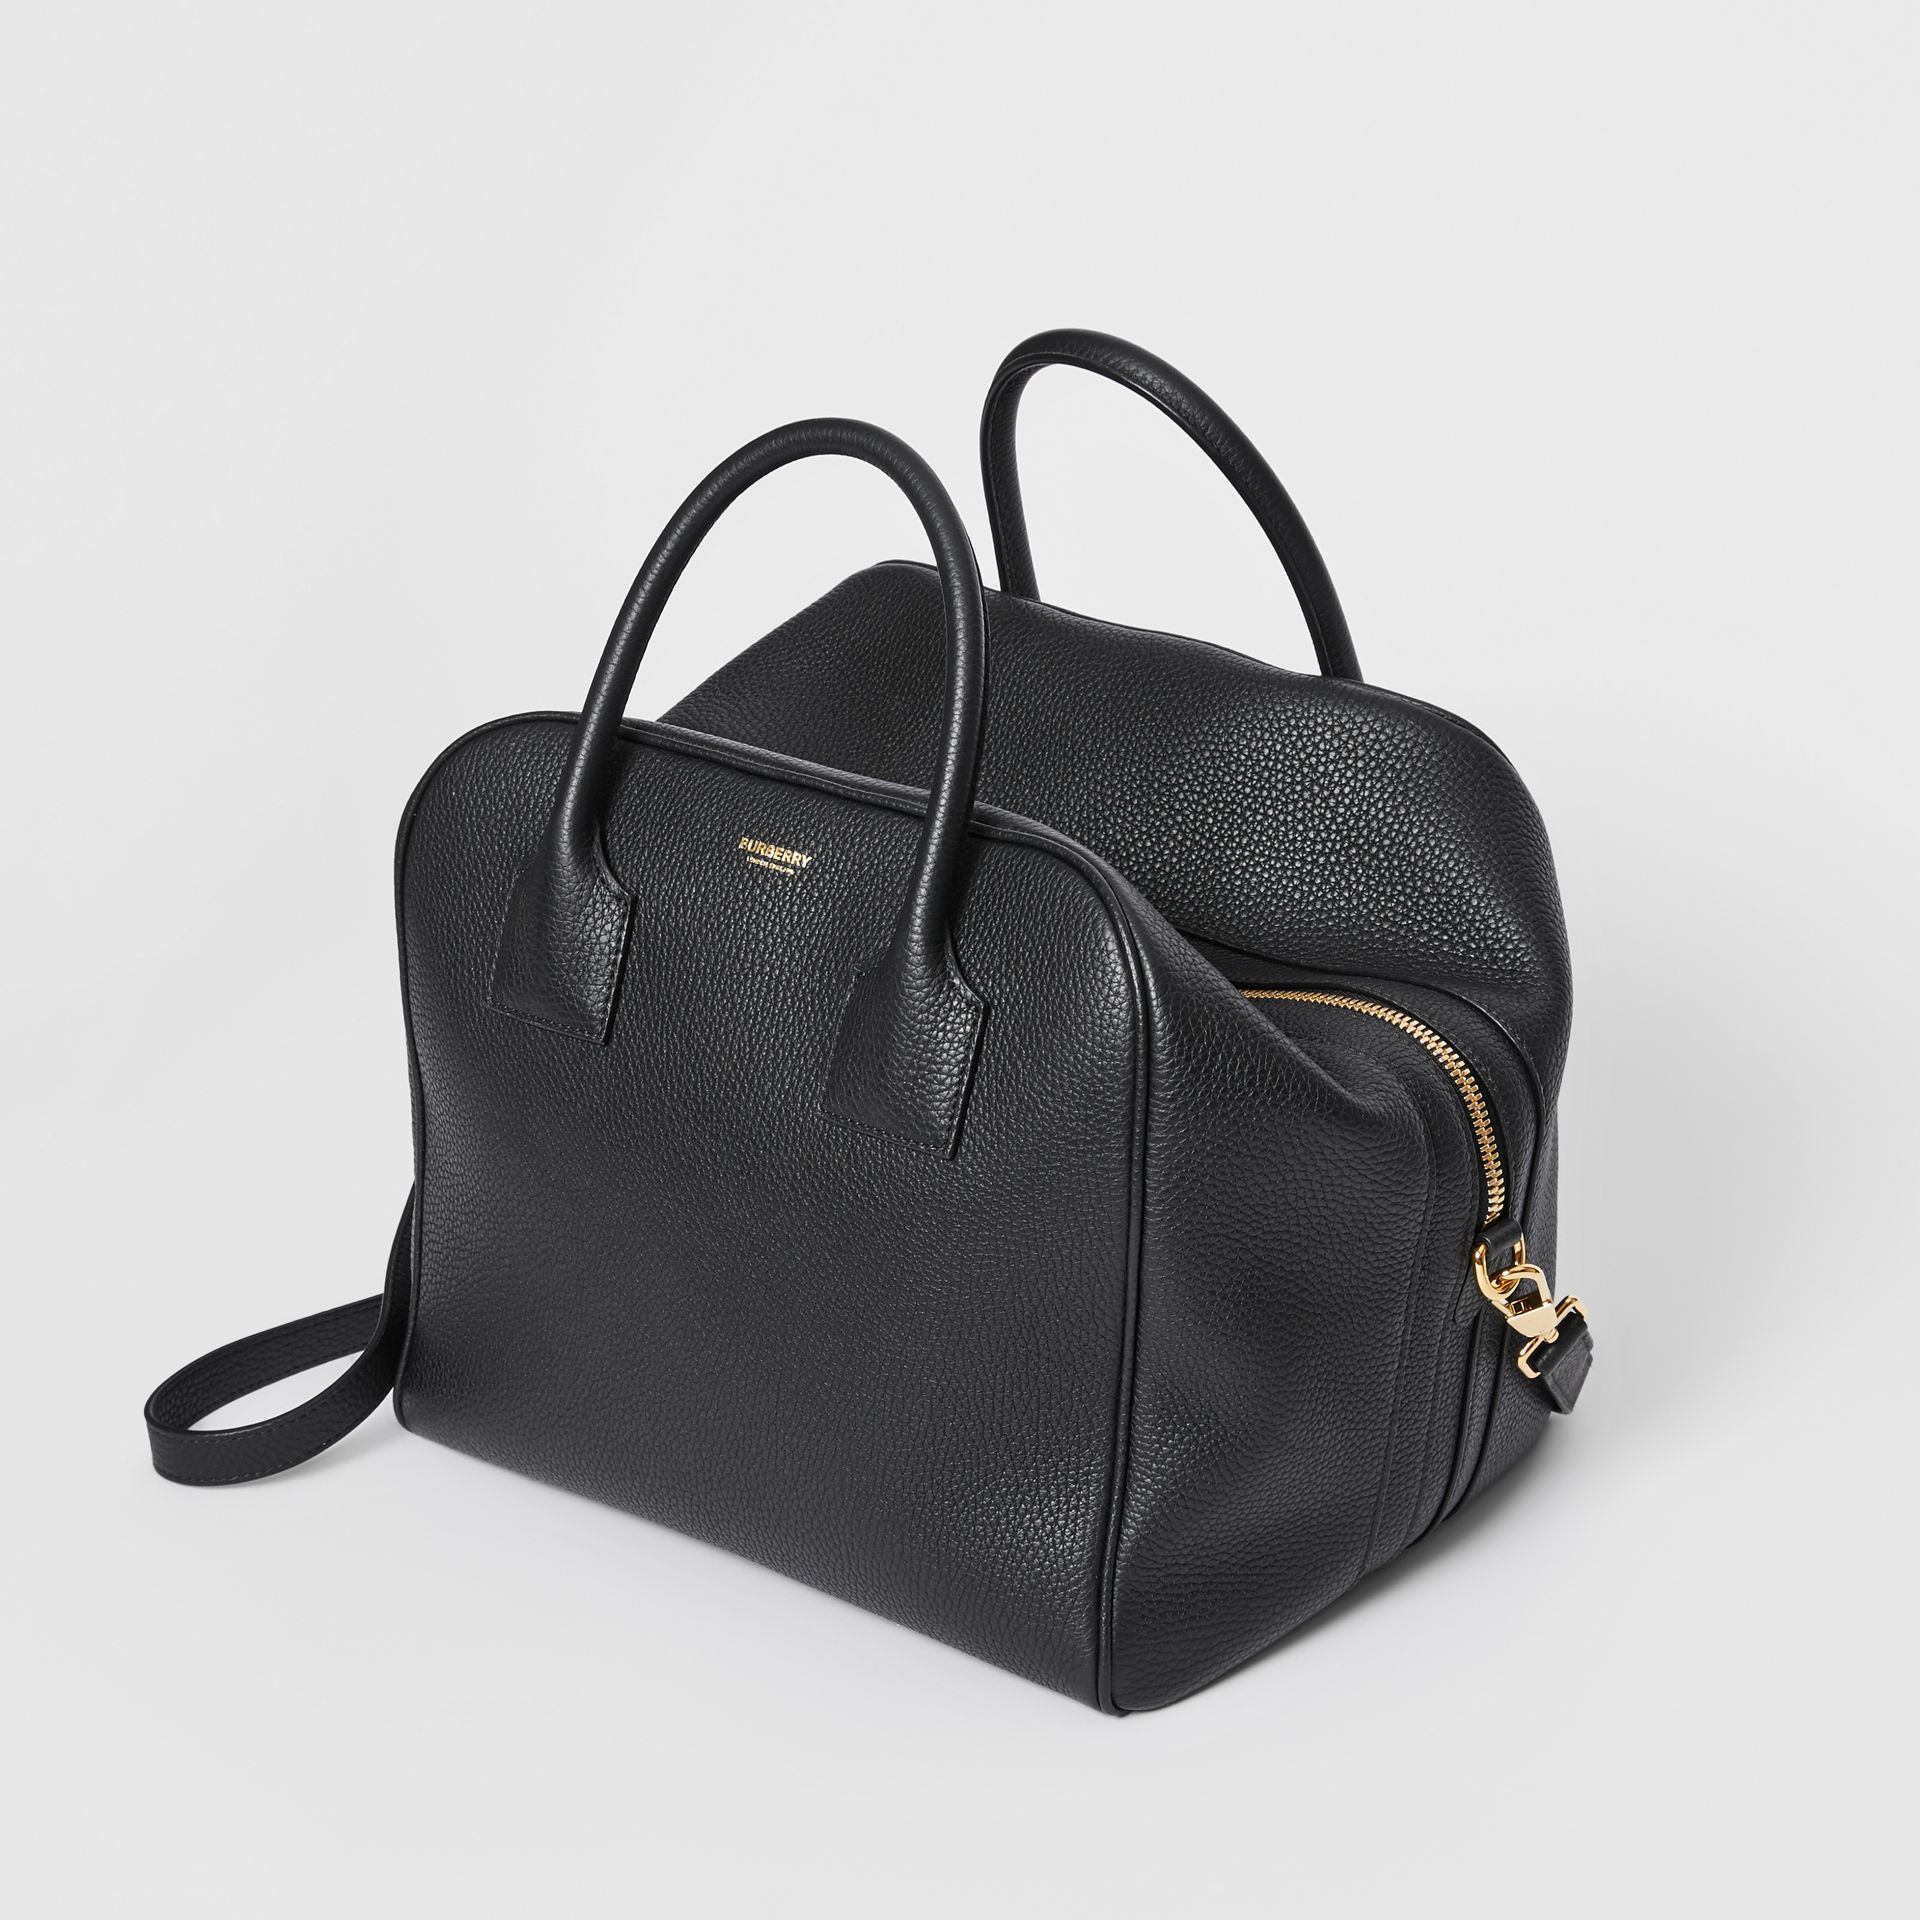 Medium Leather Cube Bag in Black - Women | Burberry Australia - gallery image 3